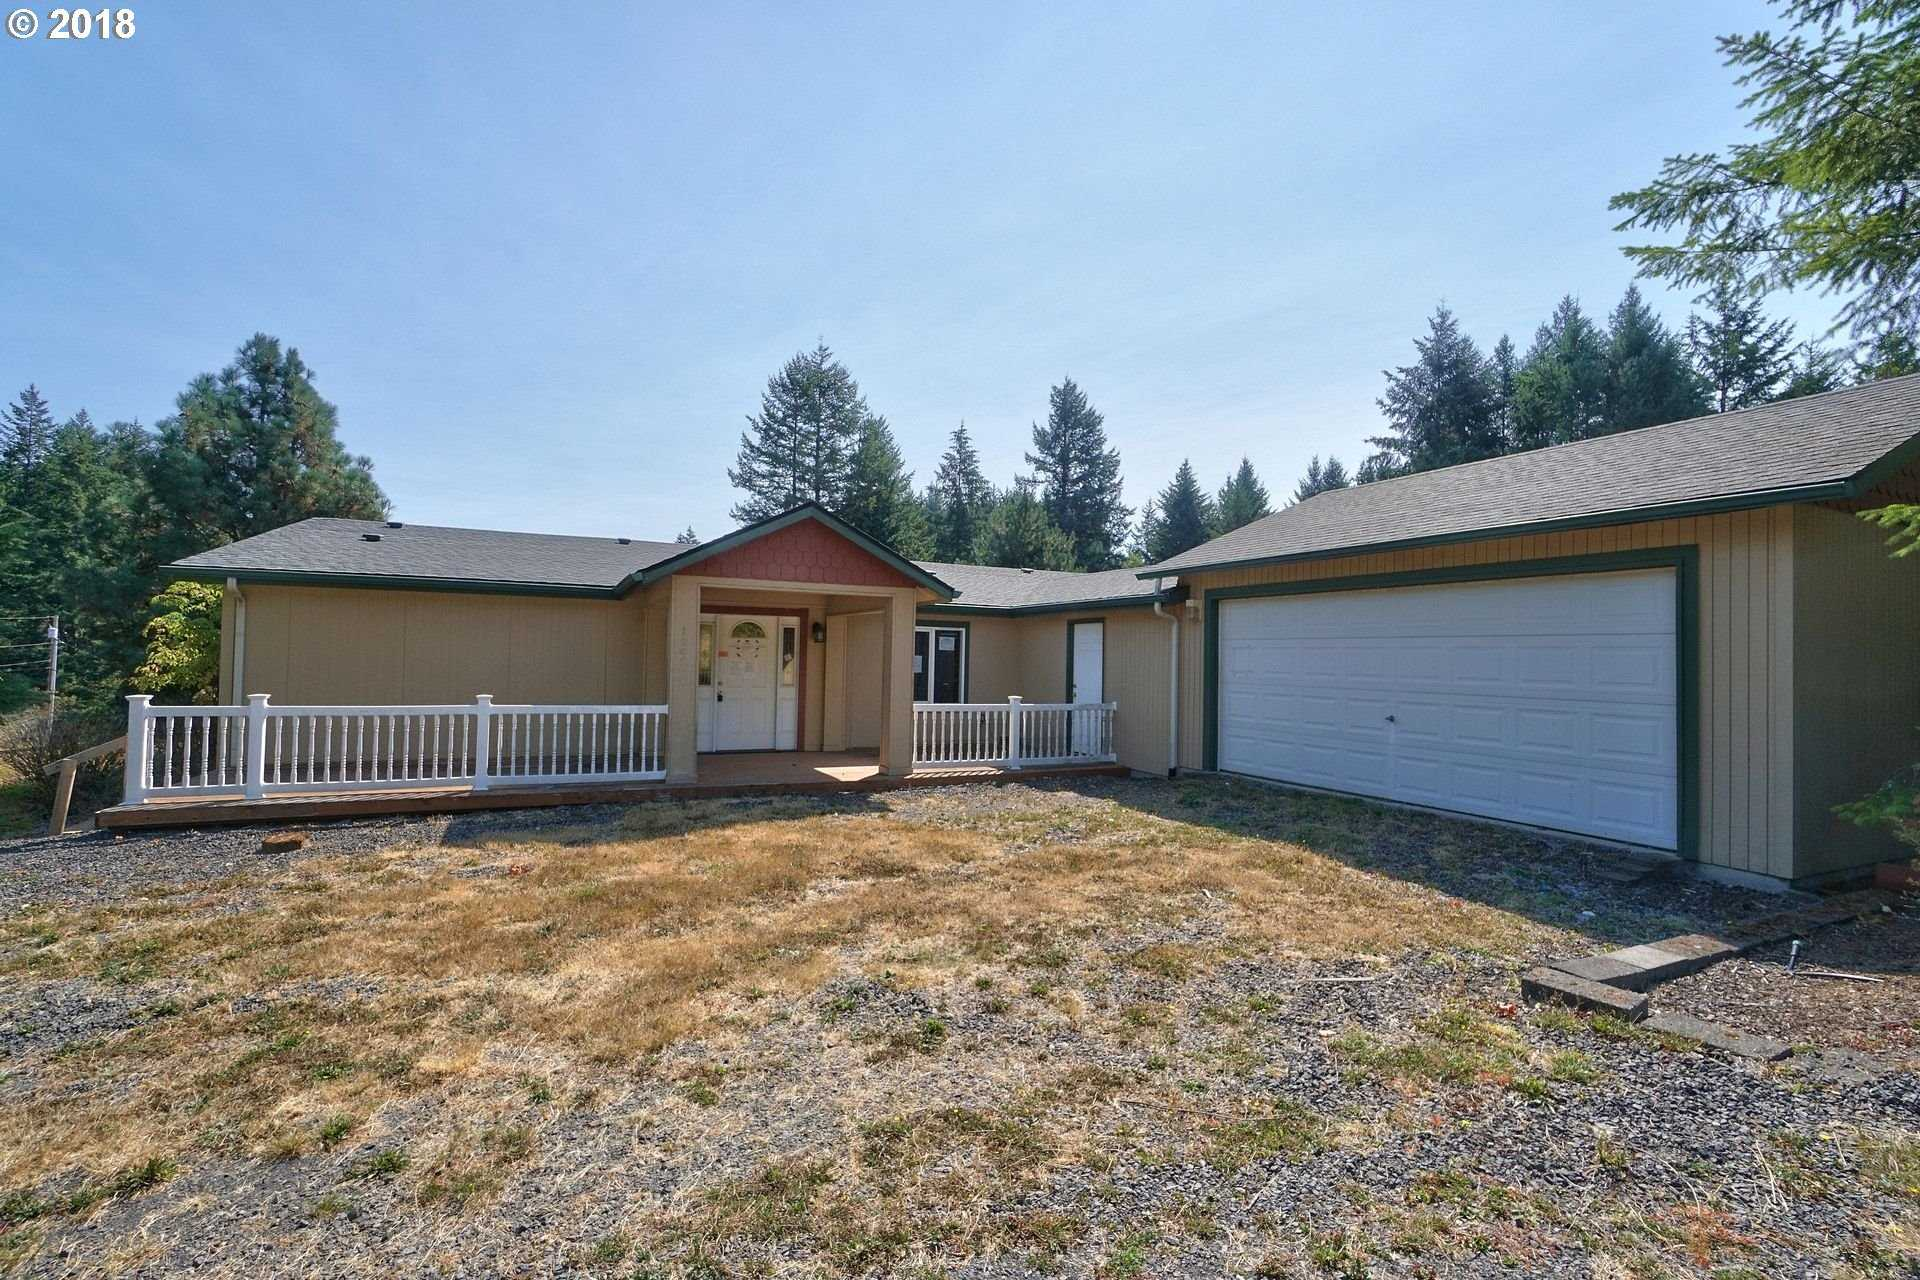 $499,900 - 3Br/2Ba -  for Sale in Rural, Damascus